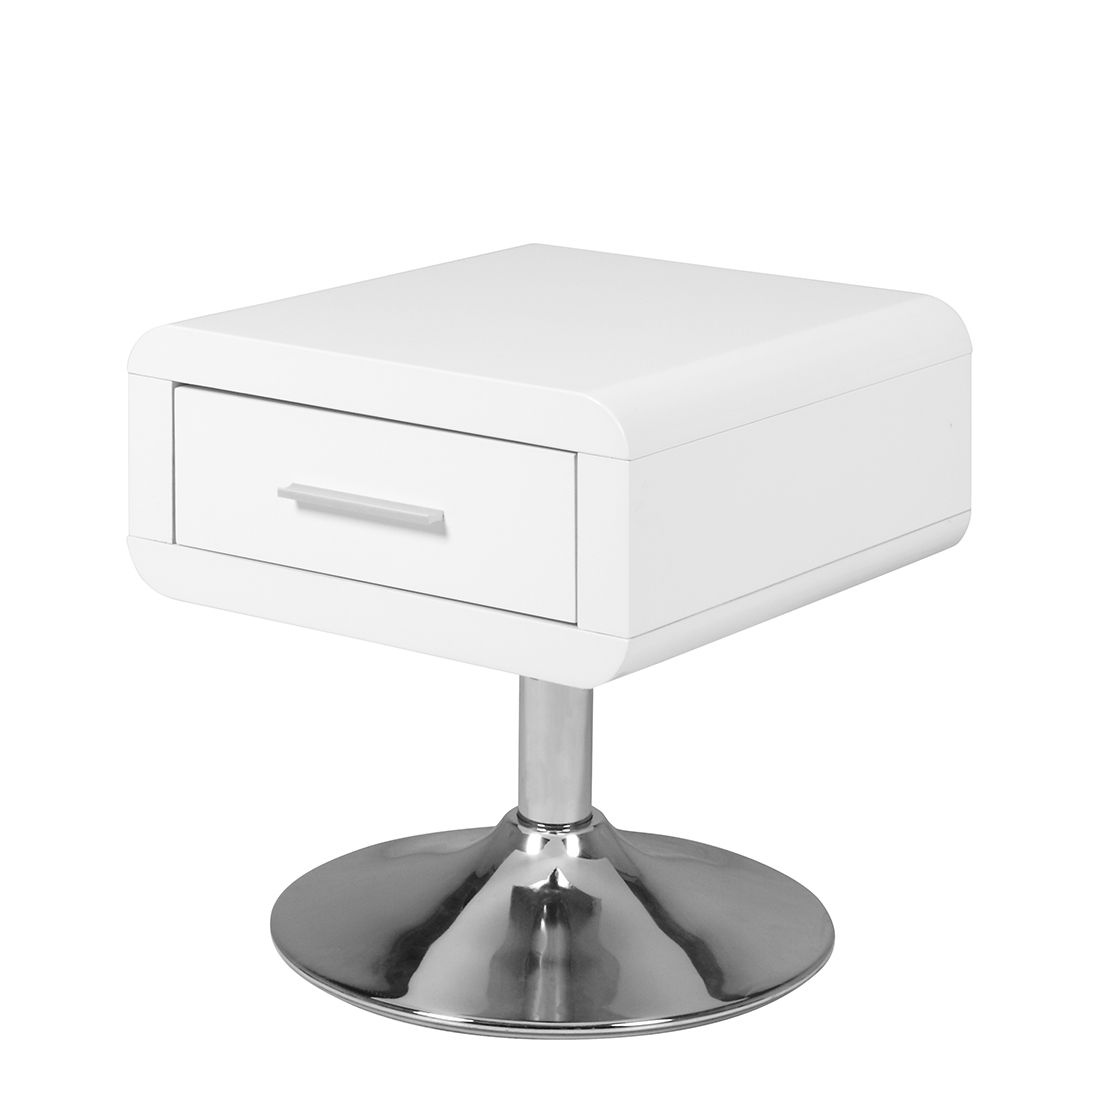 Roomscape table de chevet joker blanc brillant - Acheter table de chevet ...